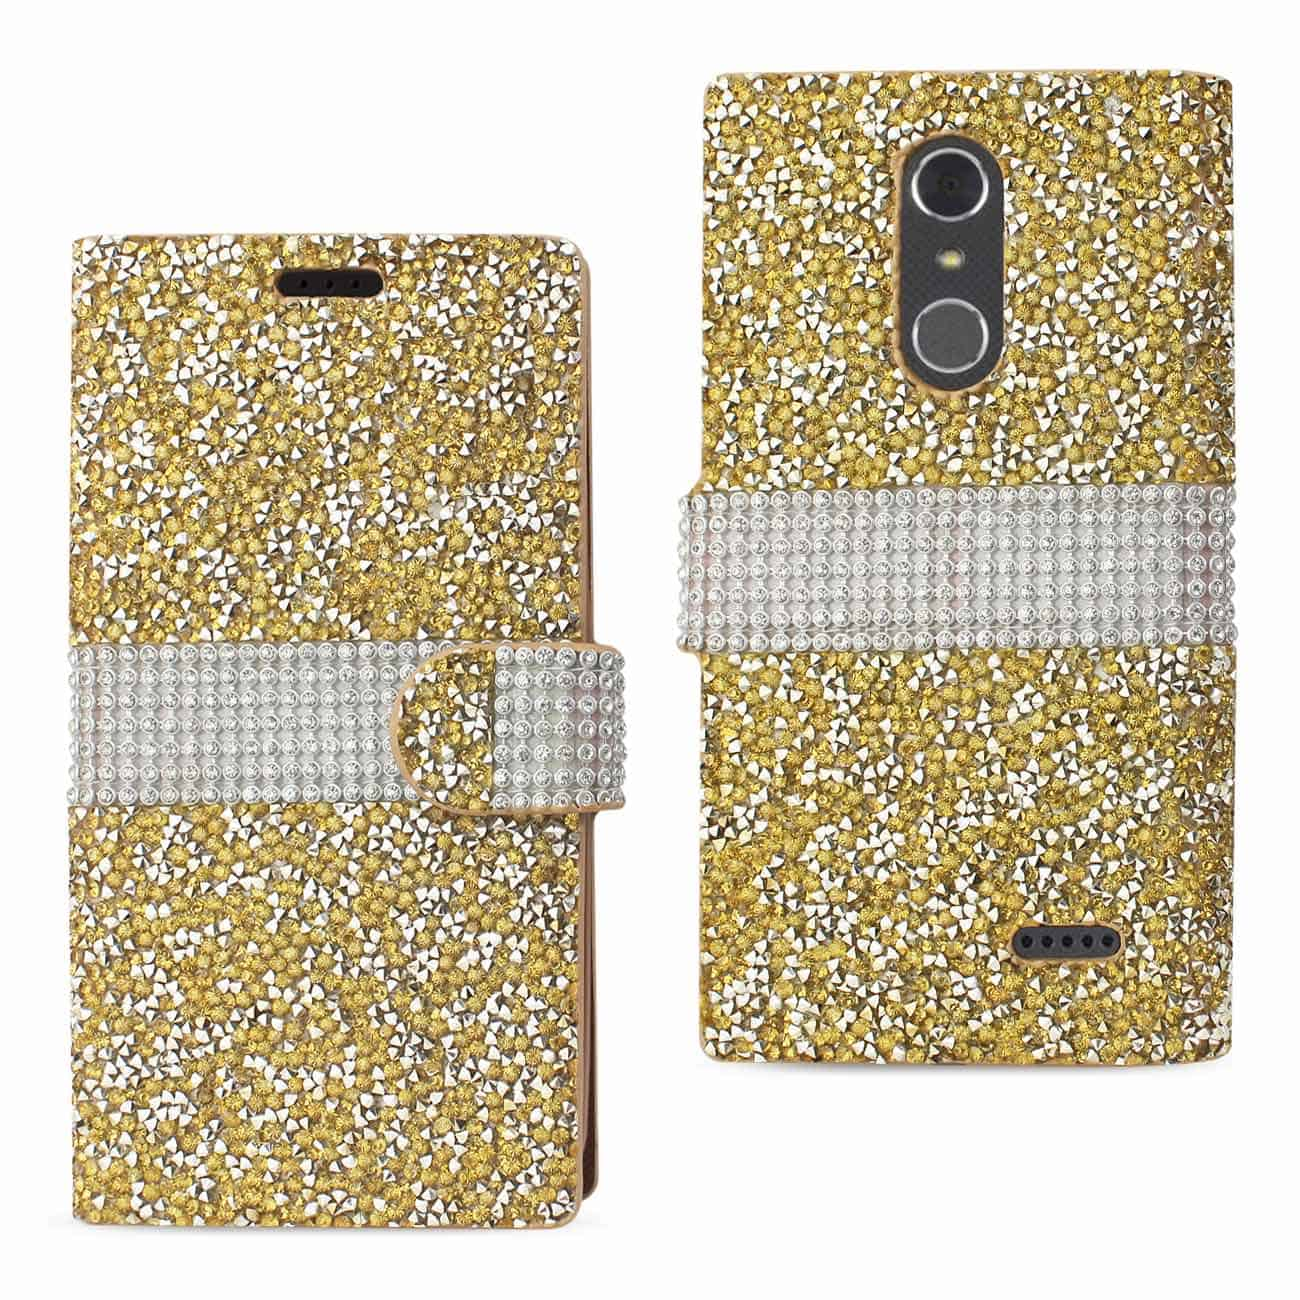 GRAND X 4 DIAMOND RHINESTONE WALLET CASE IN GOLD